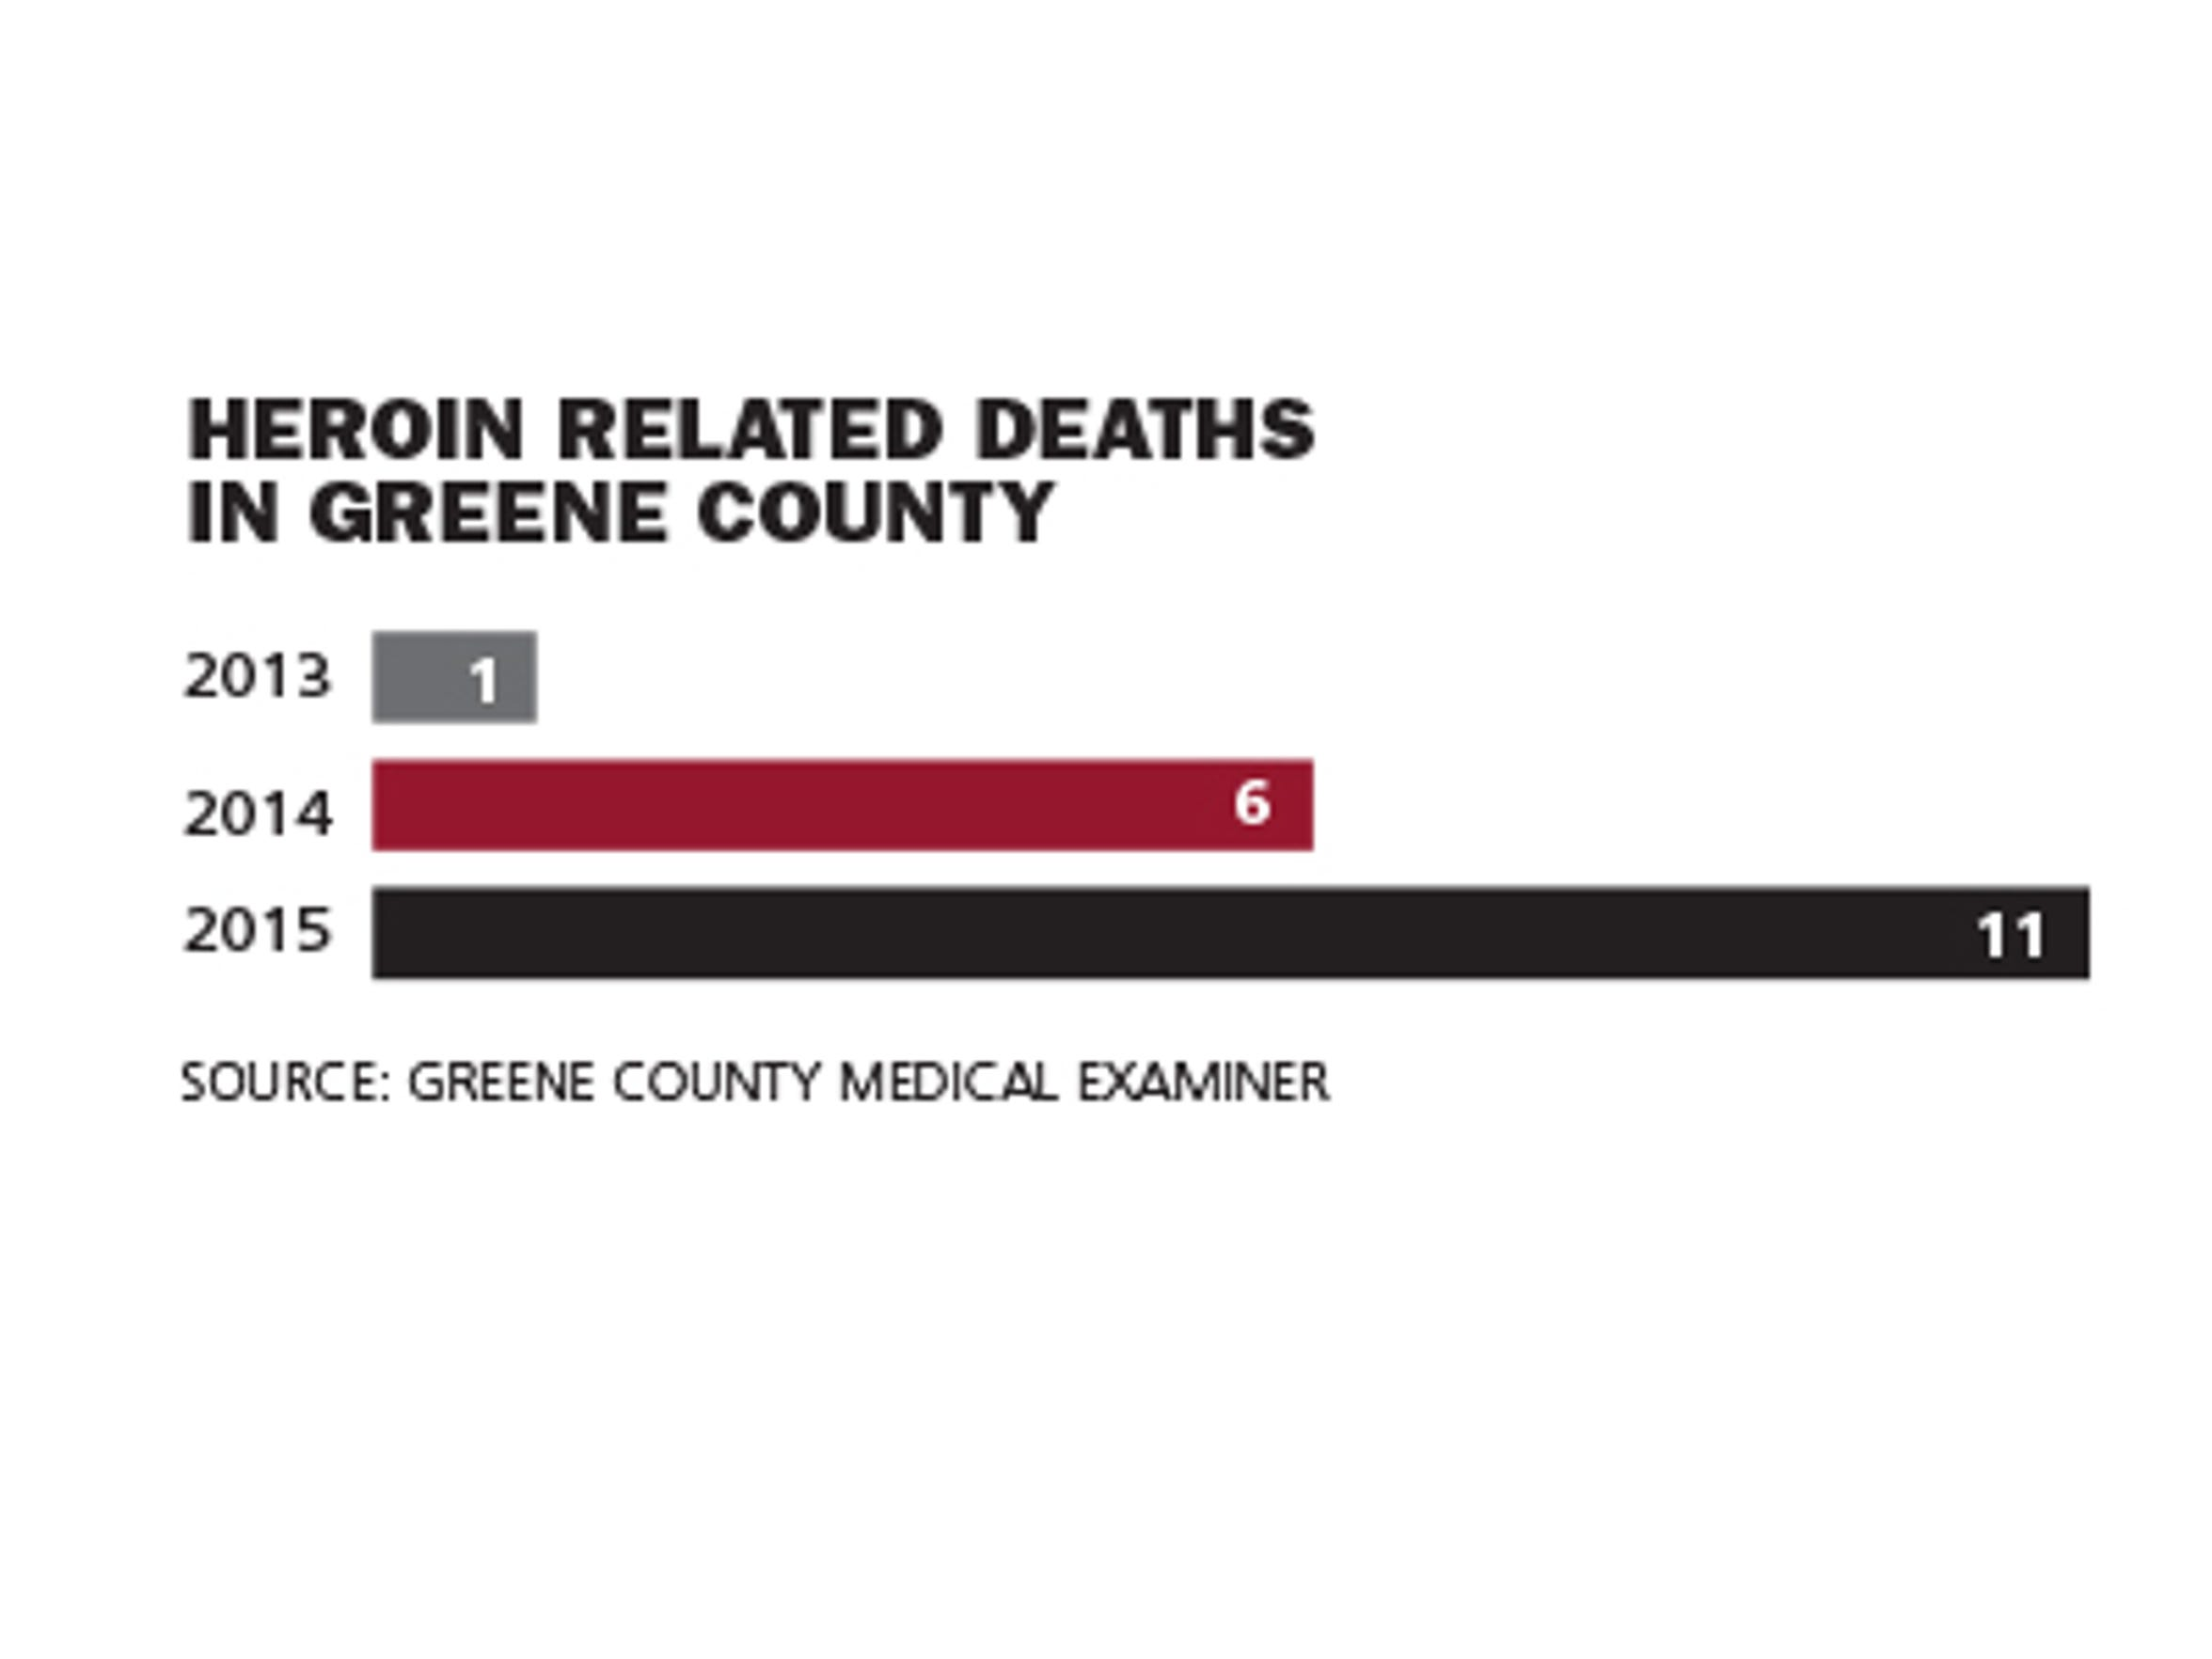 Heroin Related Deaths in Greene County